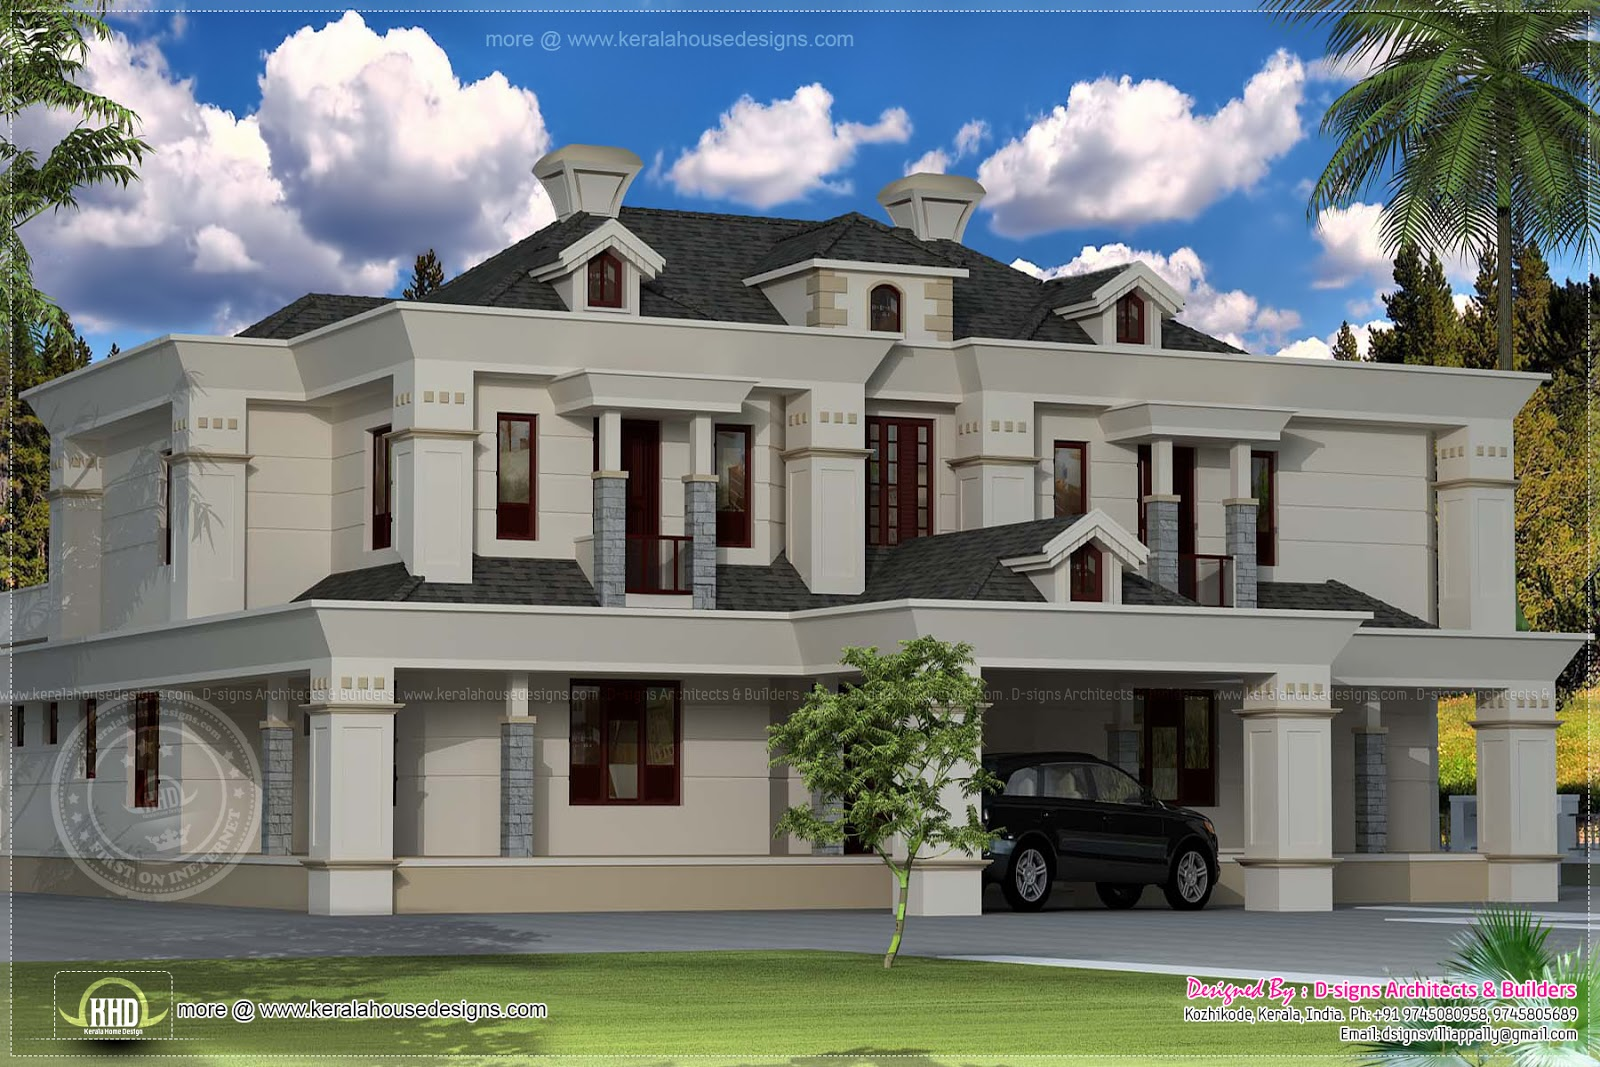 91 Victorian Style House Plans In Kerala   single floor 4 bedroom         4400 sq ft victorian style exterior home kerala plans for Victorian  style house plans in kerala